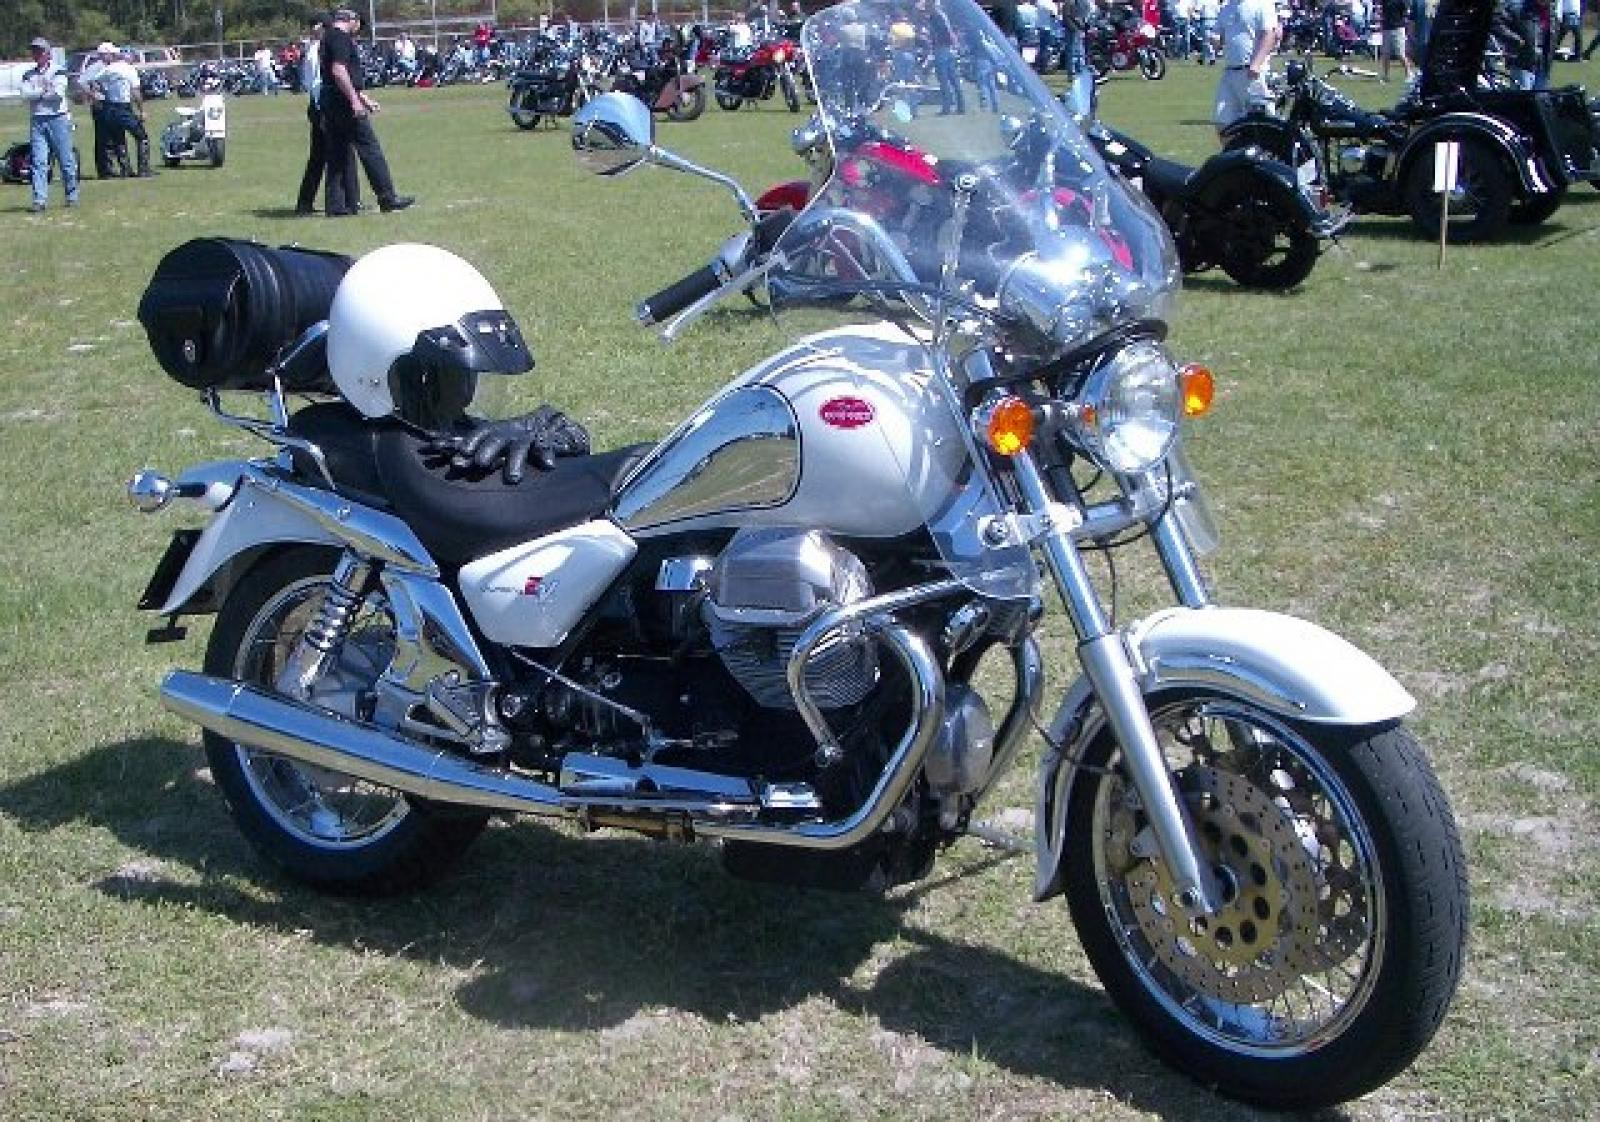 Moto Guzzi California 75 2000 images #108450